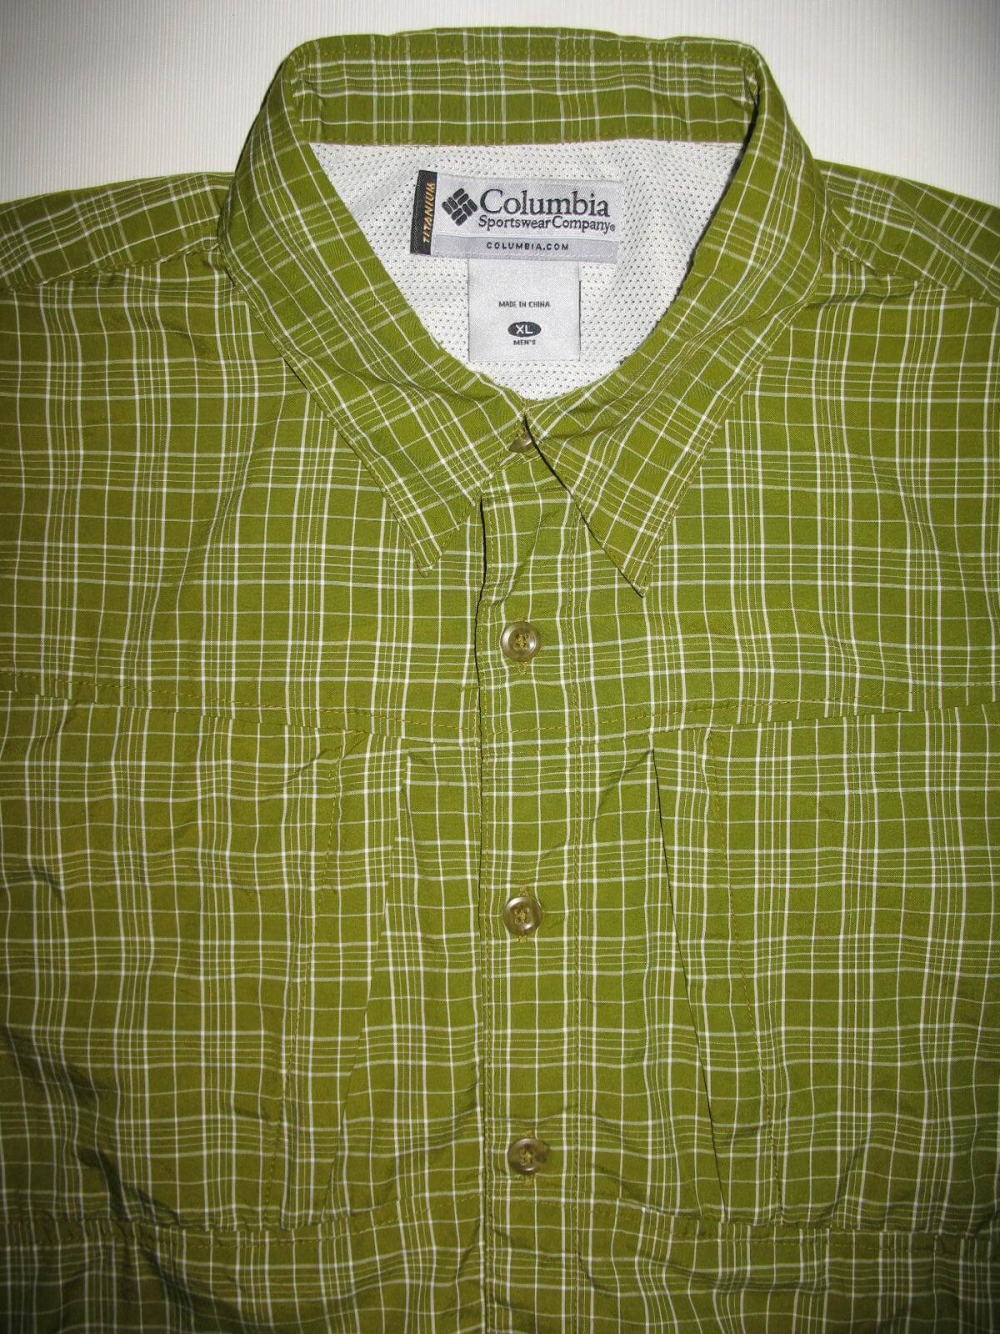 Рубашка COLUMBIA titanium green shirts (размер XL) - 3